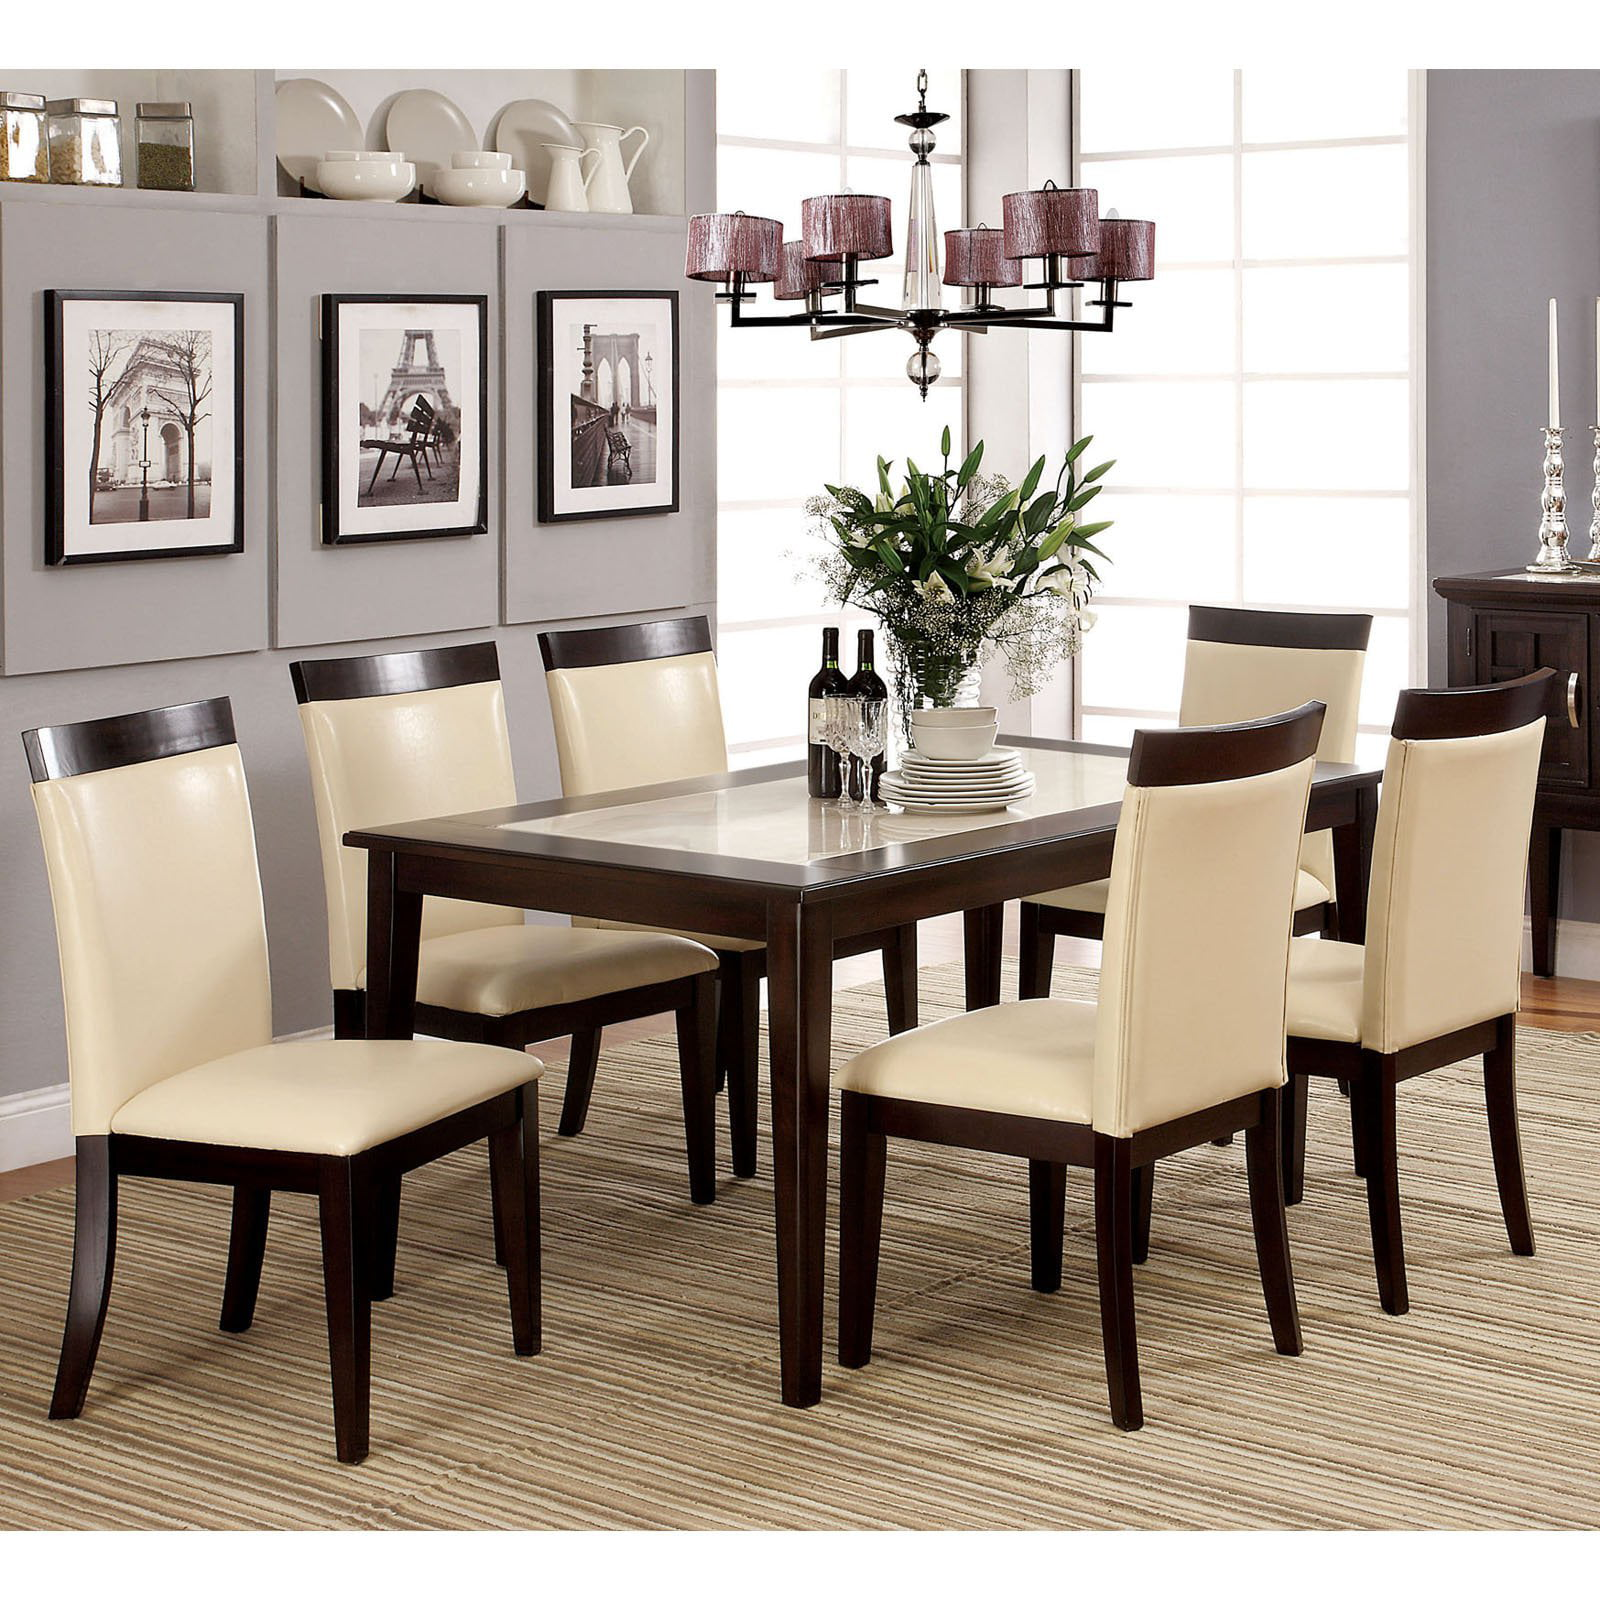 Dining Table Set steve silver 7 piece marseille marble top dining table set - dark